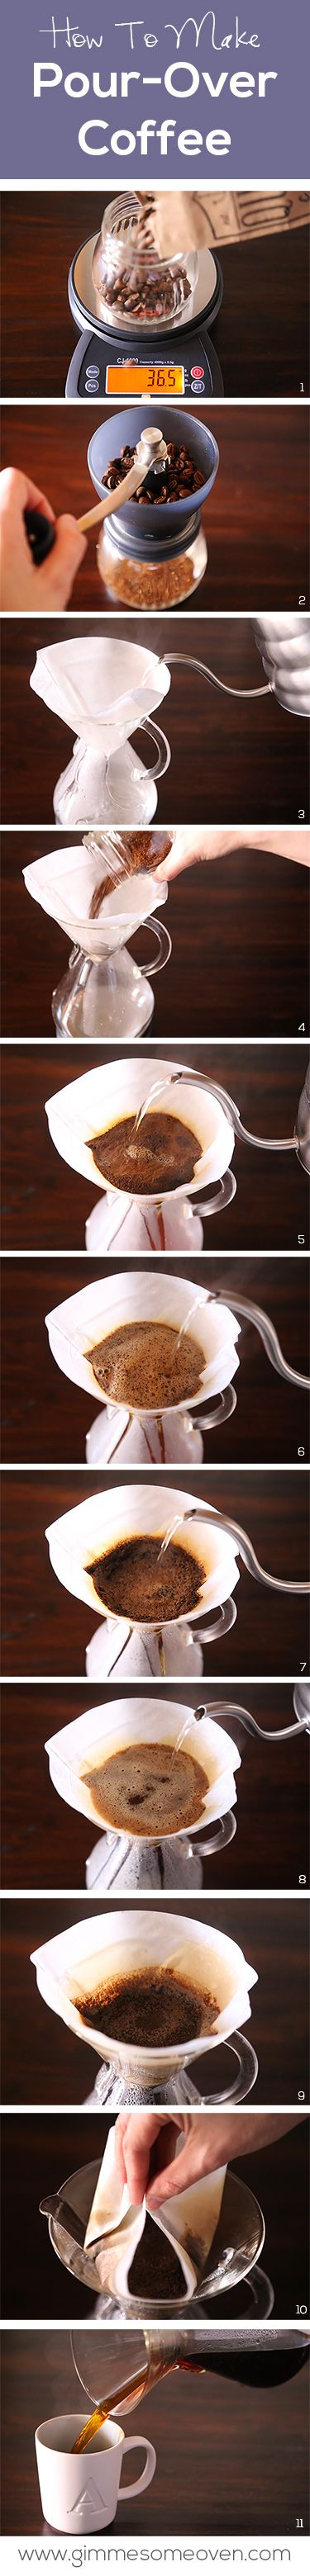 How To Make Pour-Over Coffee |